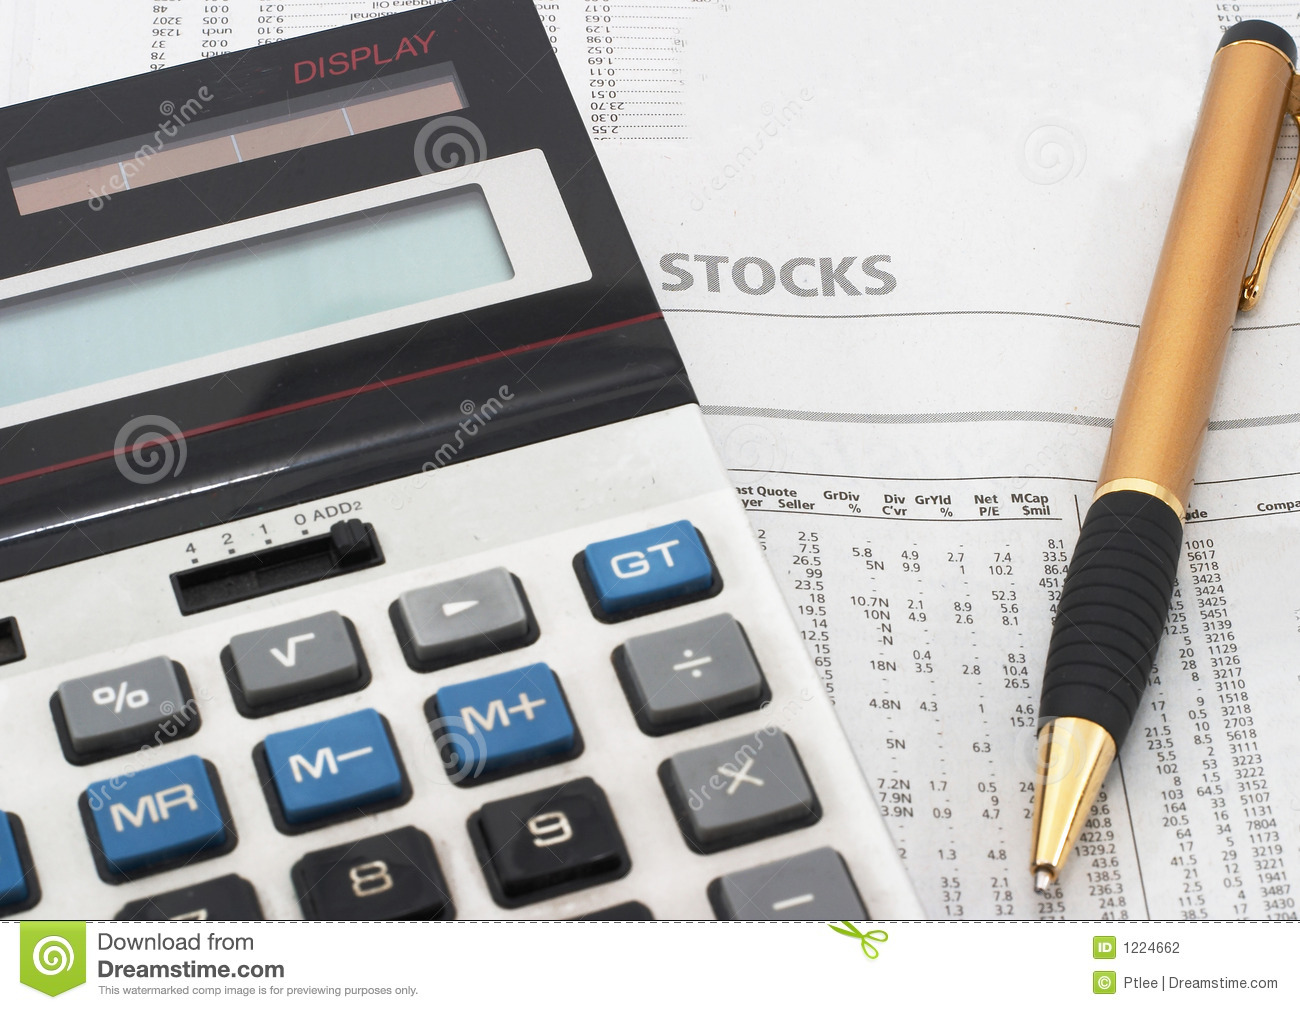 Essay on Stock Market: Definition,Structure and Issues